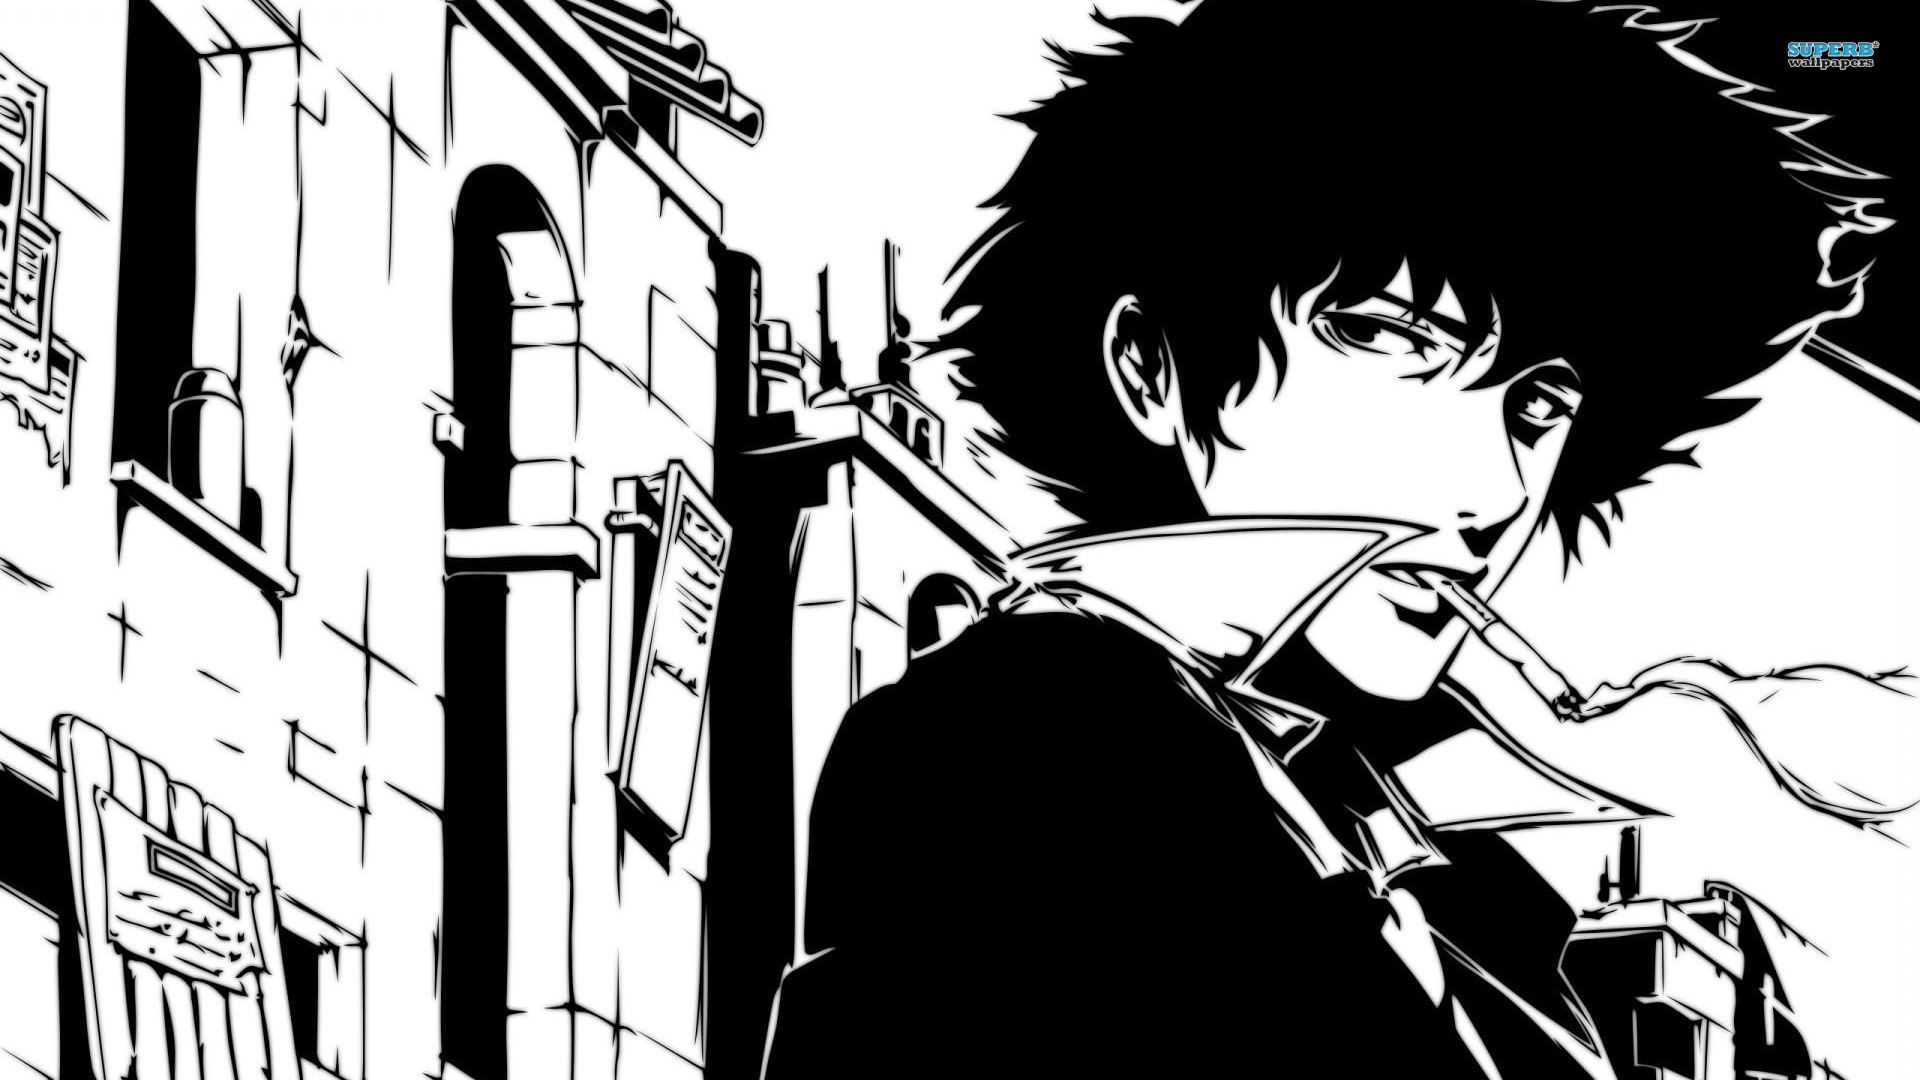 1920x1080 Cowboy Bebop Anime Wallpapers High Quality | Download Free